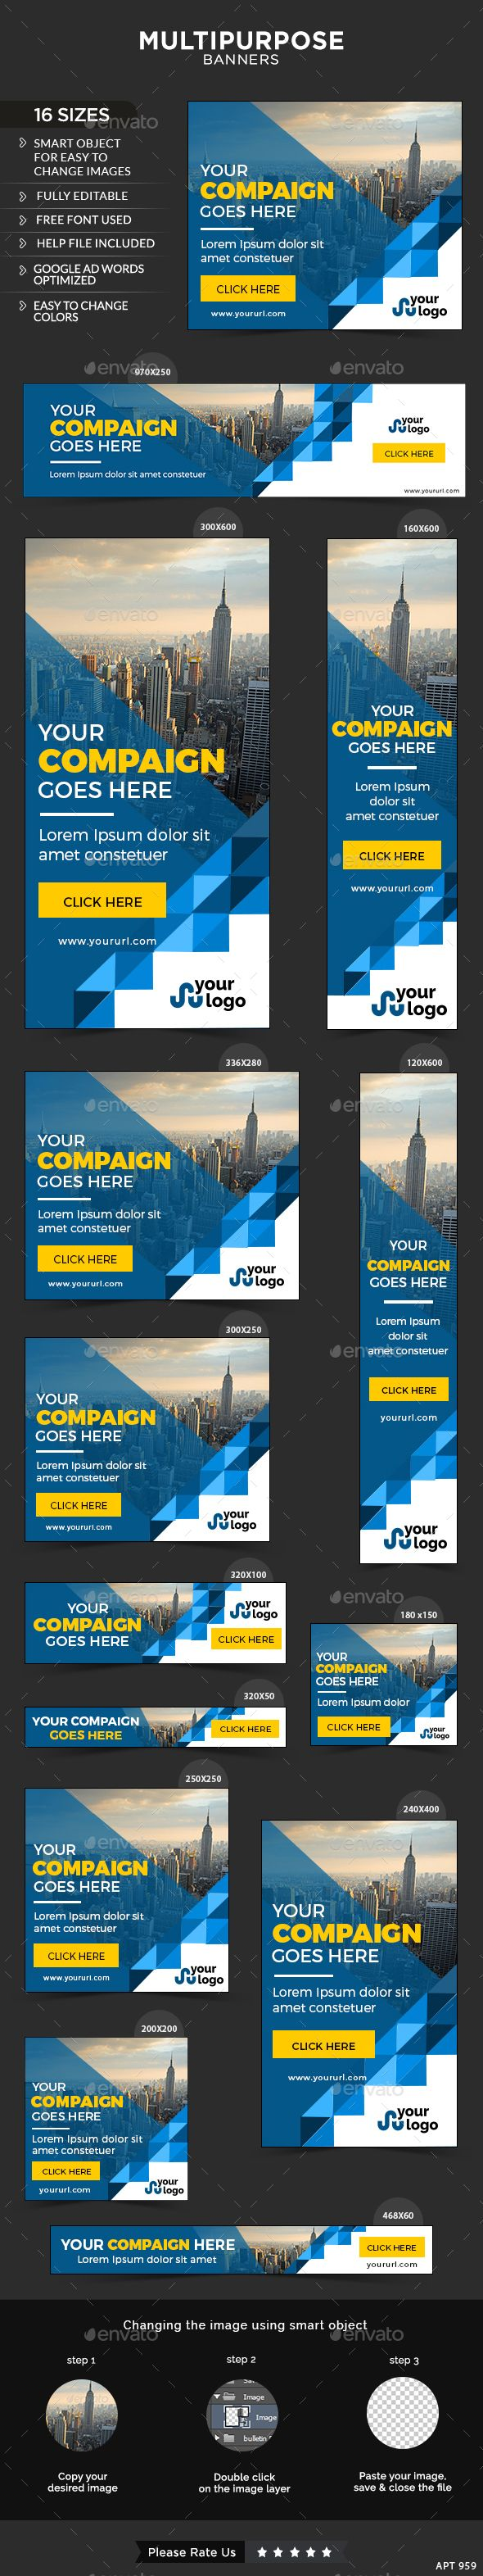 Multipurpose Web Banners Template PSD #design #ad Download: http://graphicriver.net/item/multipurpose-banners/13376637?ref=ksioks